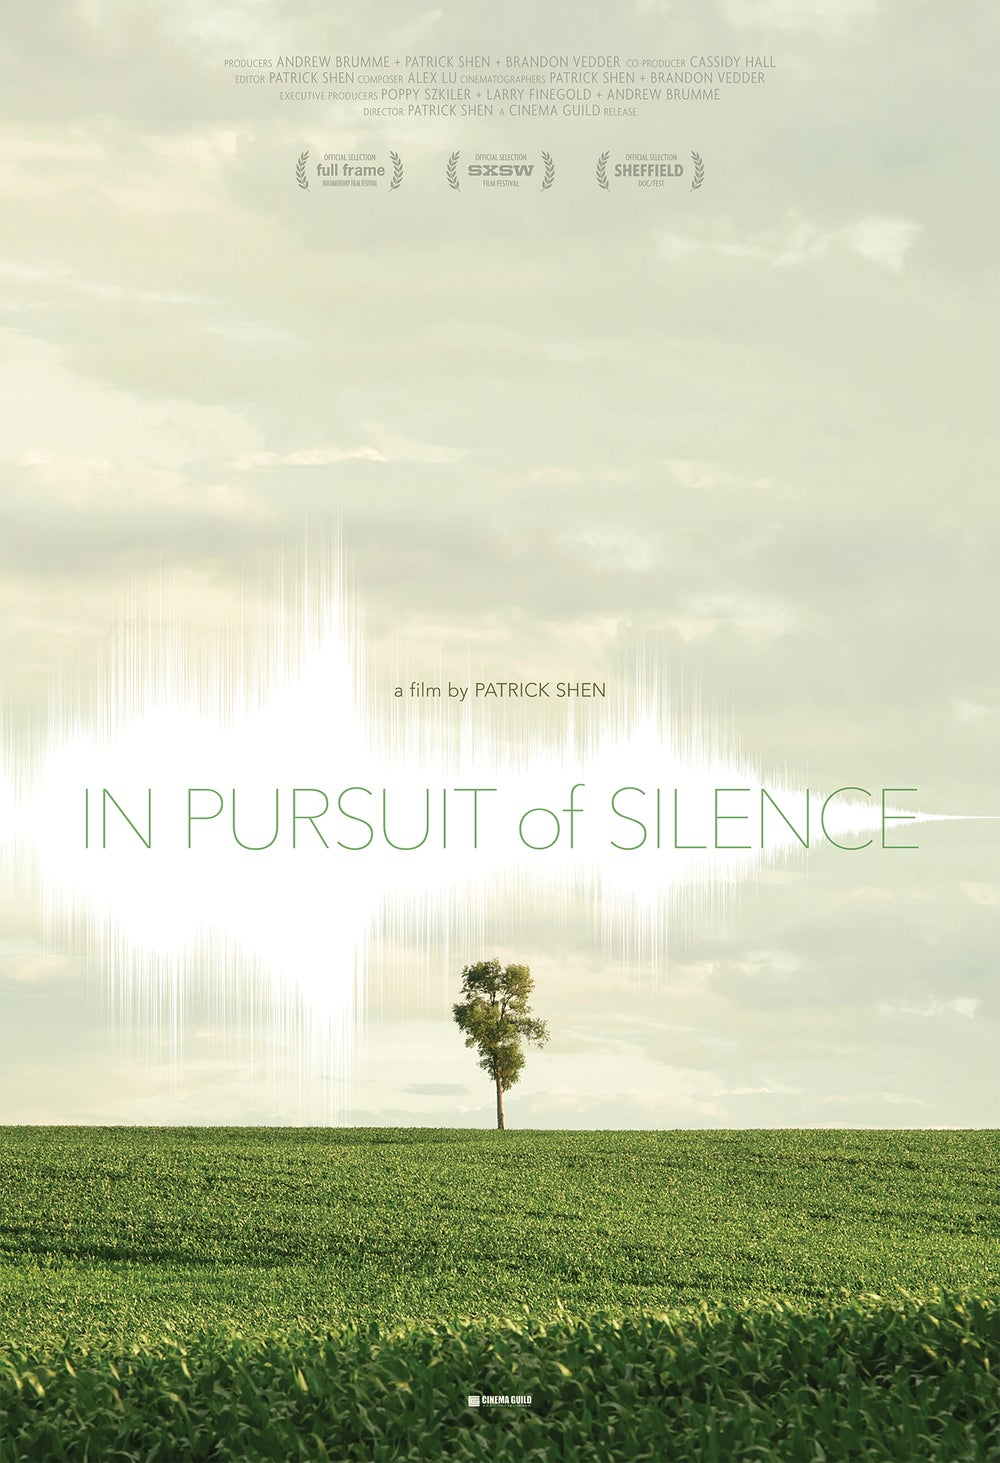 In Pursuit of Silence 11x17 Theatrical & Festival Posters